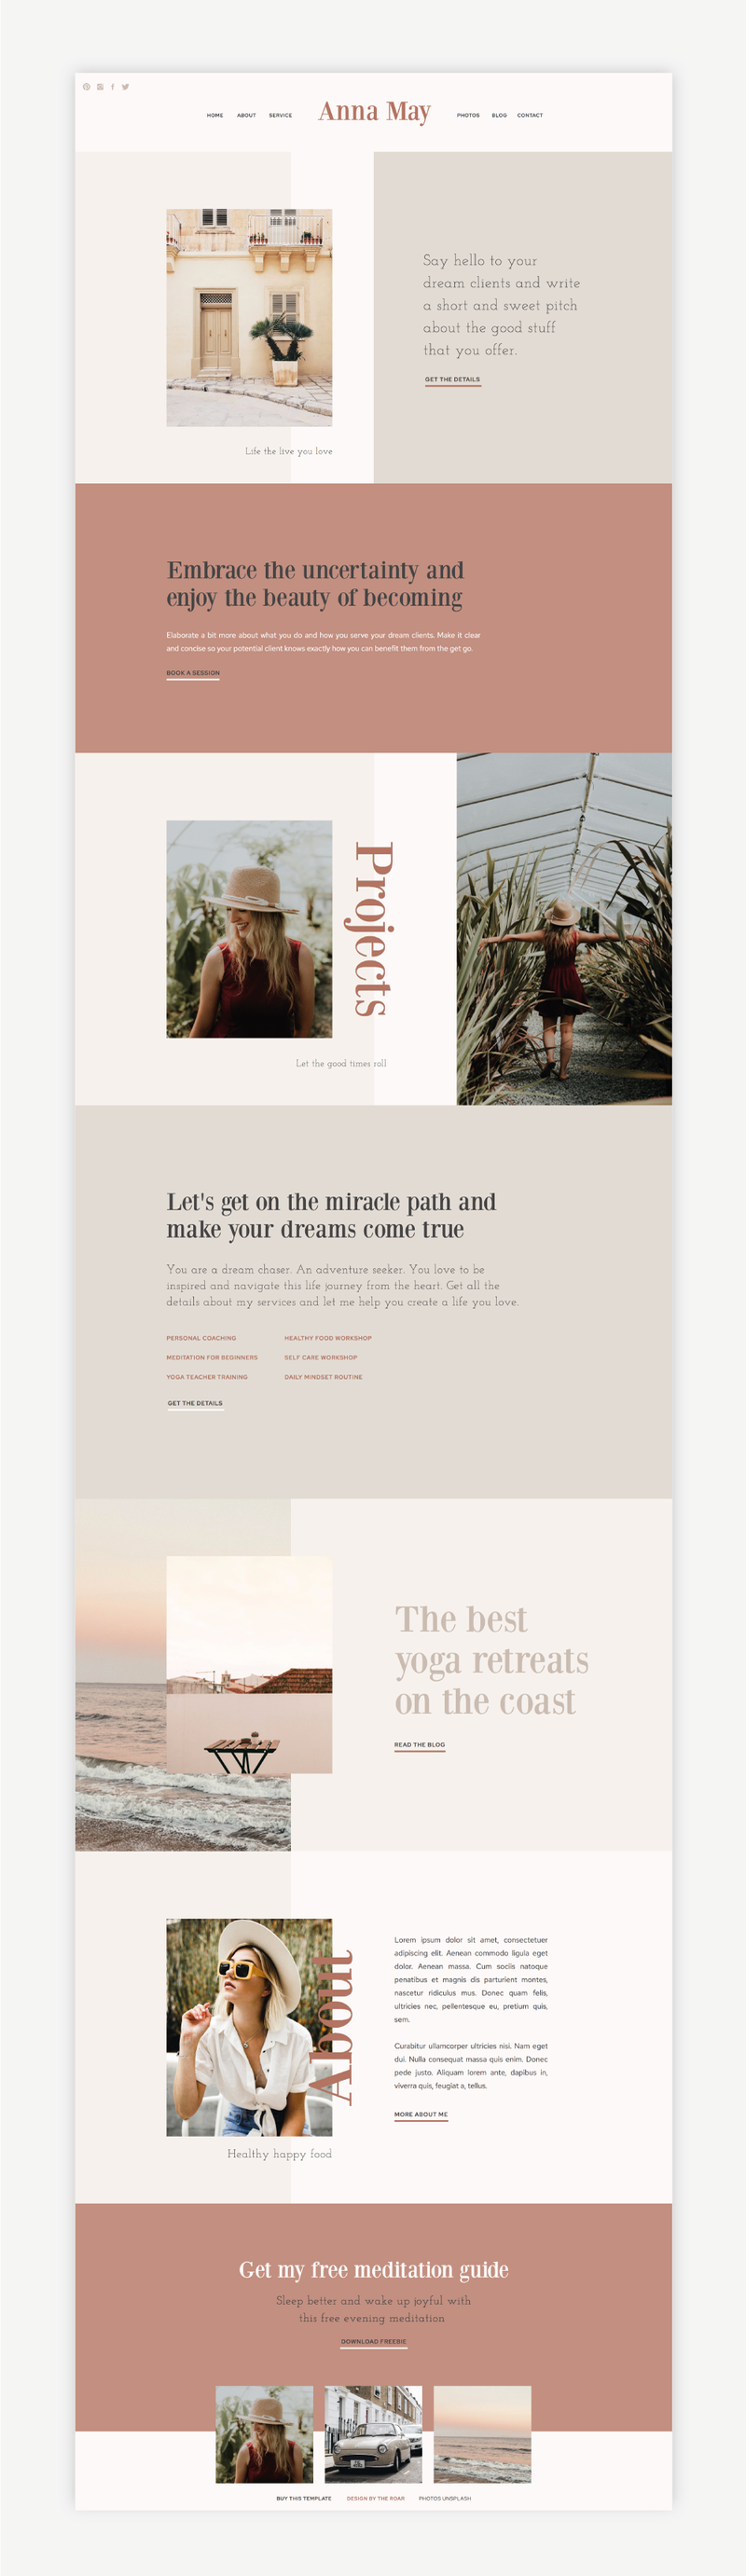 The Roar Showit Web Design Website Template Anna May Shop